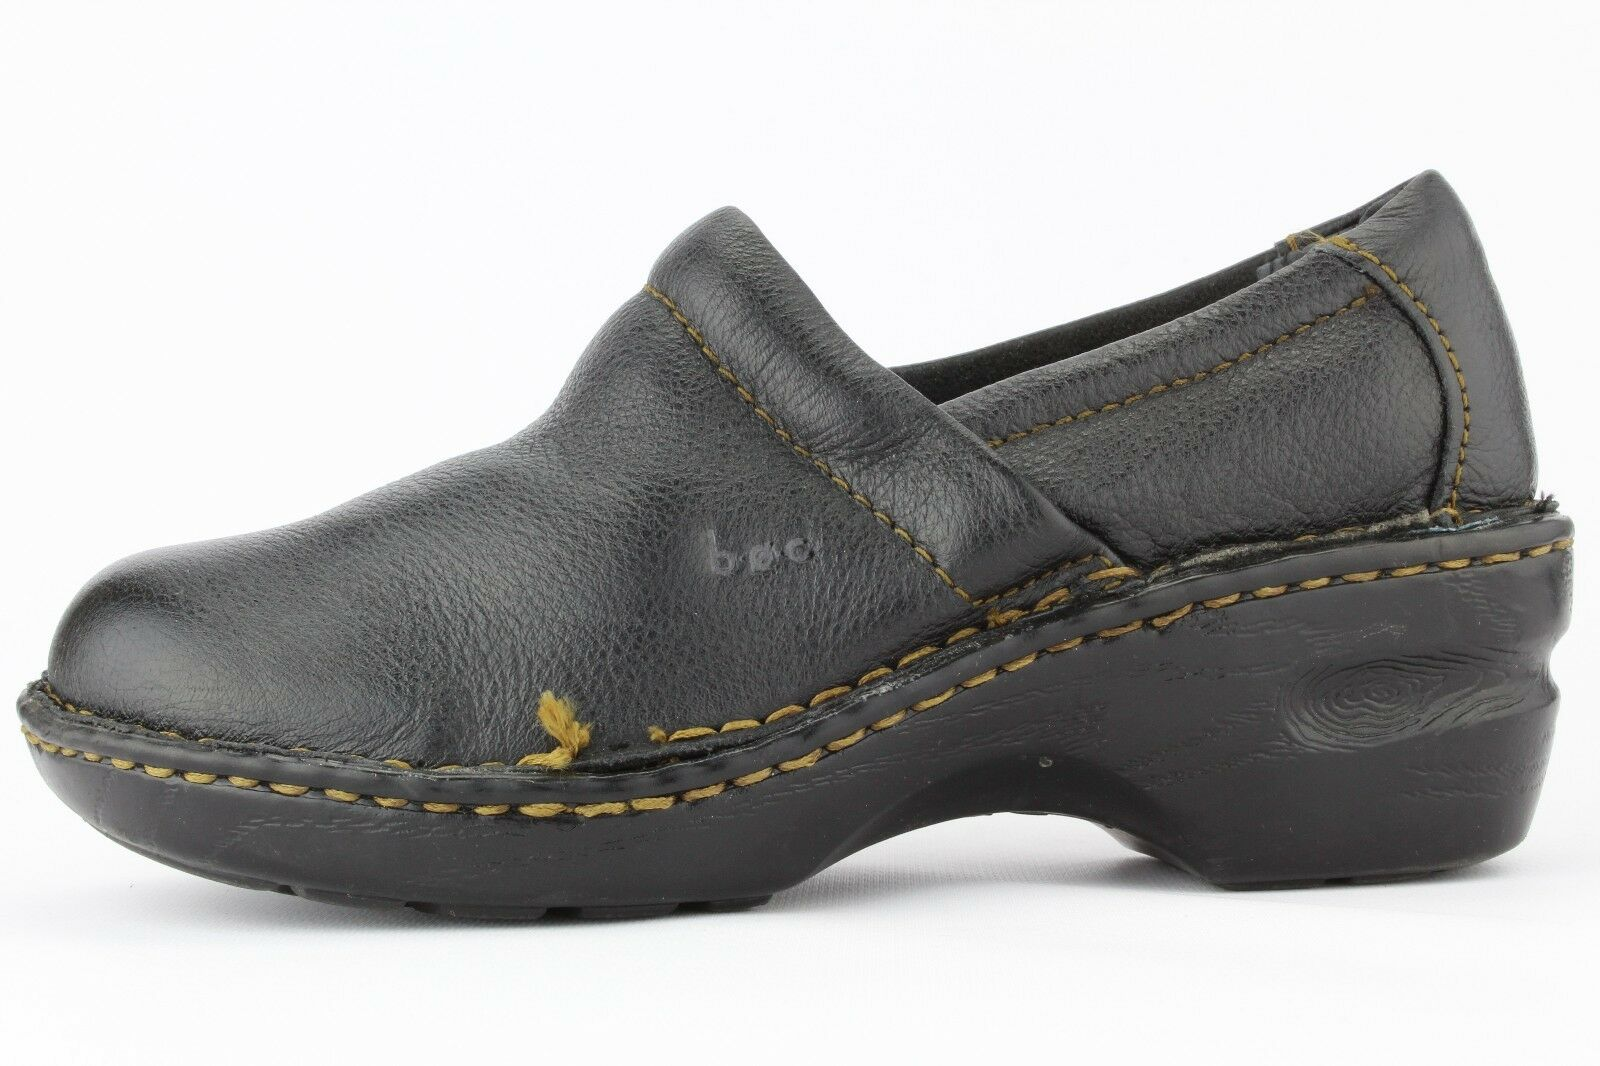 BOC Born Concept Women's Women's Women's Black Leather Toby II Slip-on Clogs Size 6.5 5f7358